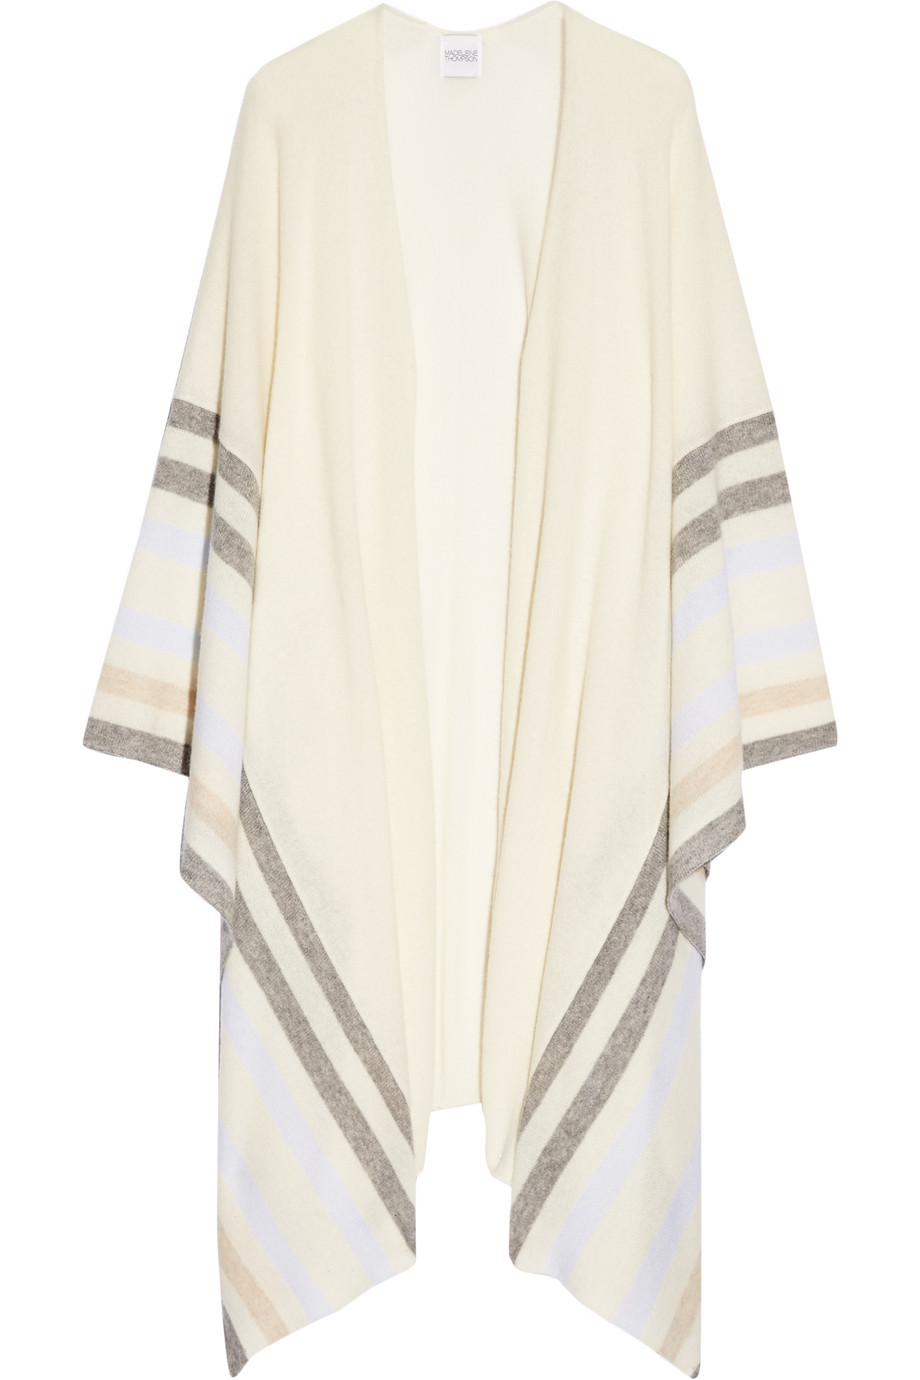 Nidd Striped Cashmere Wrap, Madeleine Thompson, Cream, Women's